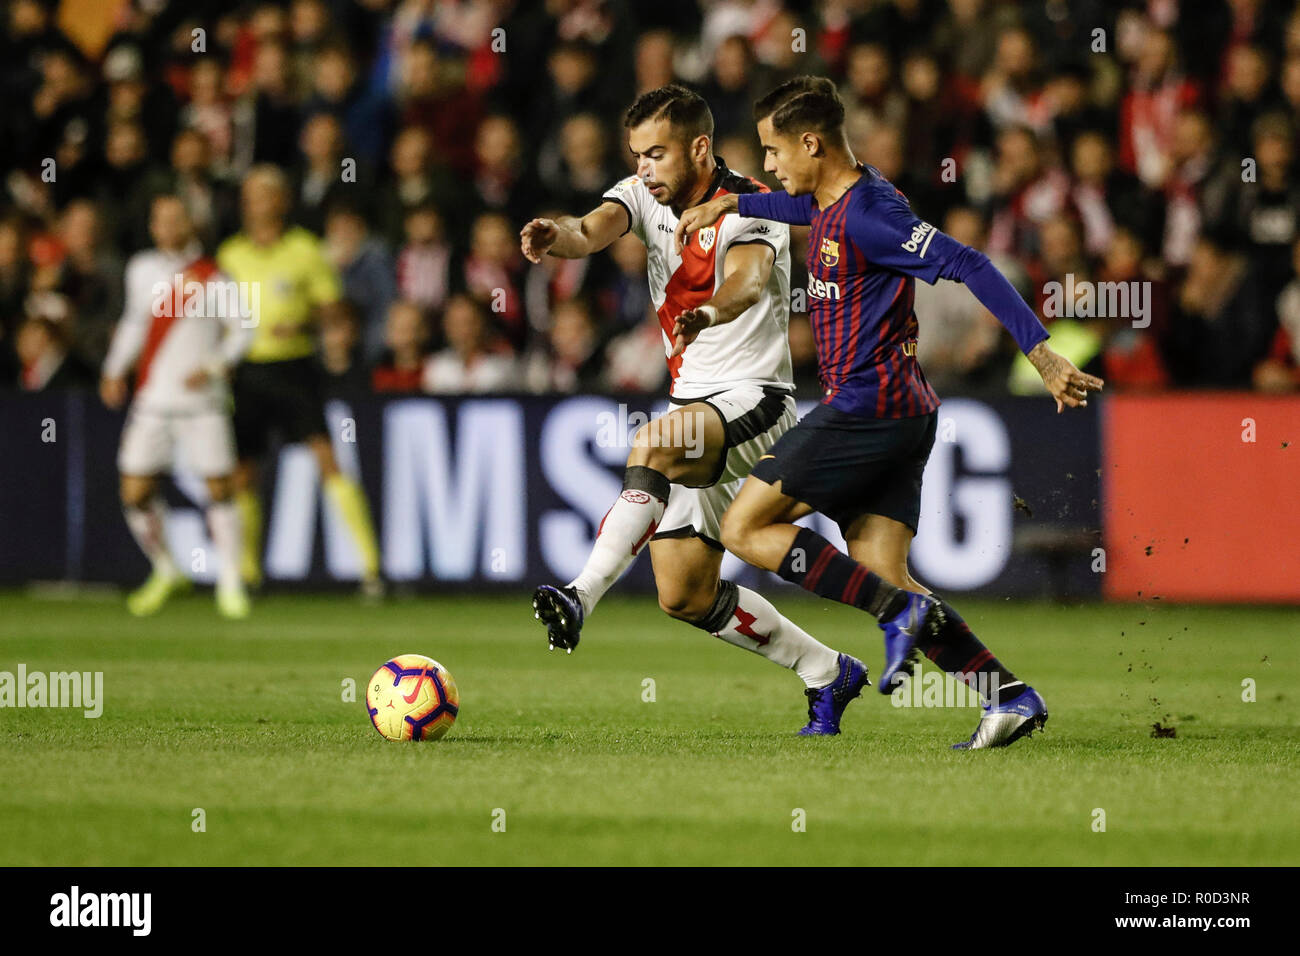 Futbol Live Campo De Futbol De Vallecas Madrid Spain 3rd Nov 2018 La Liga